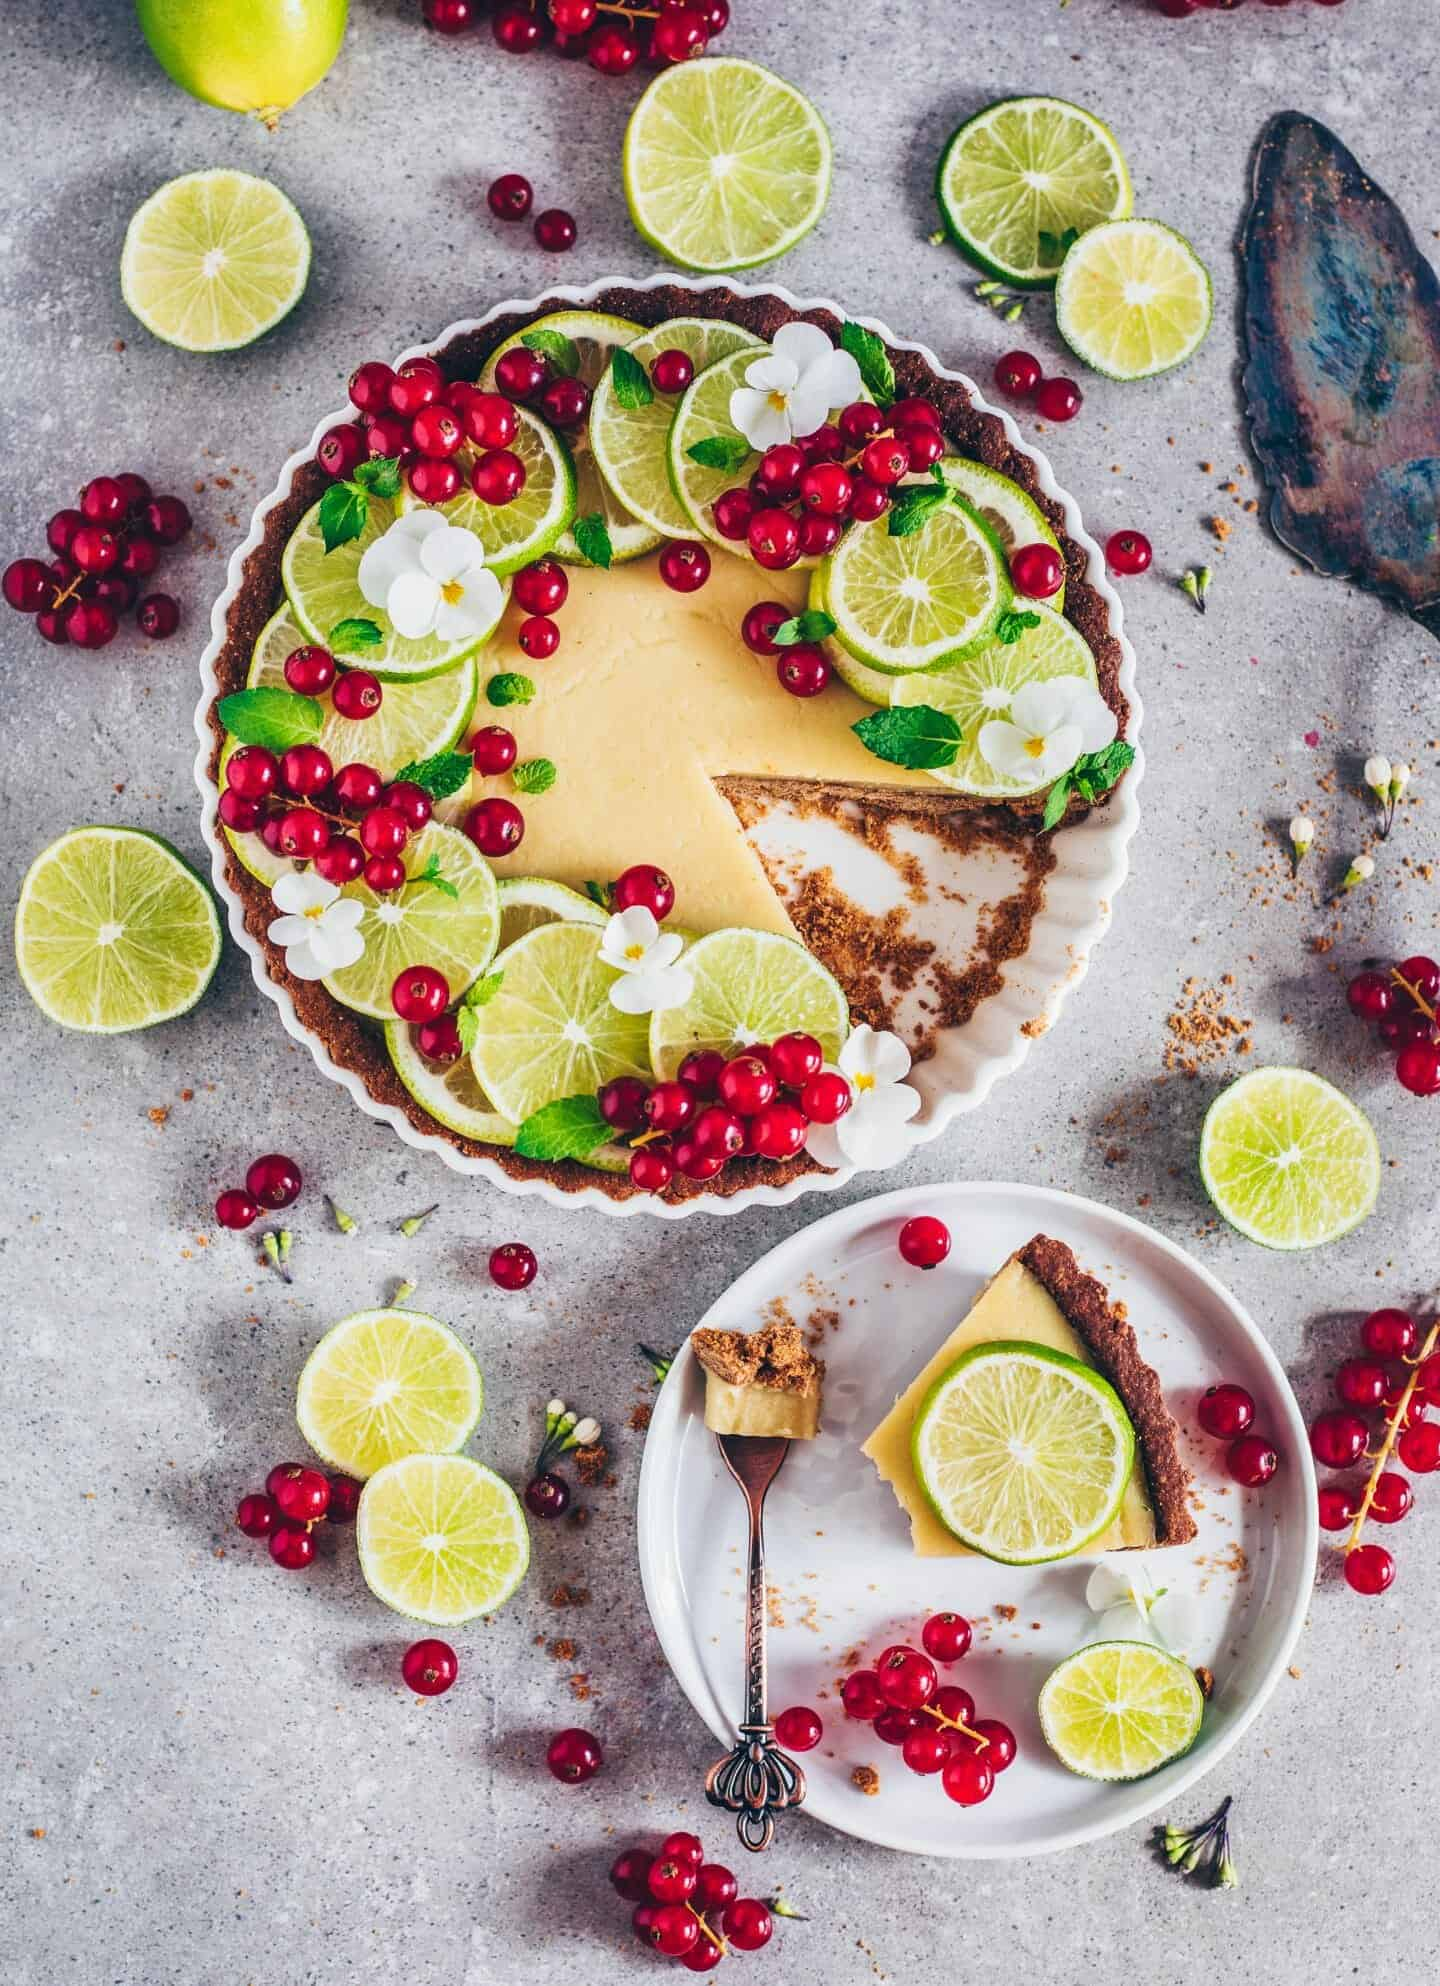 vegan key lime pie (gluten-free tart)